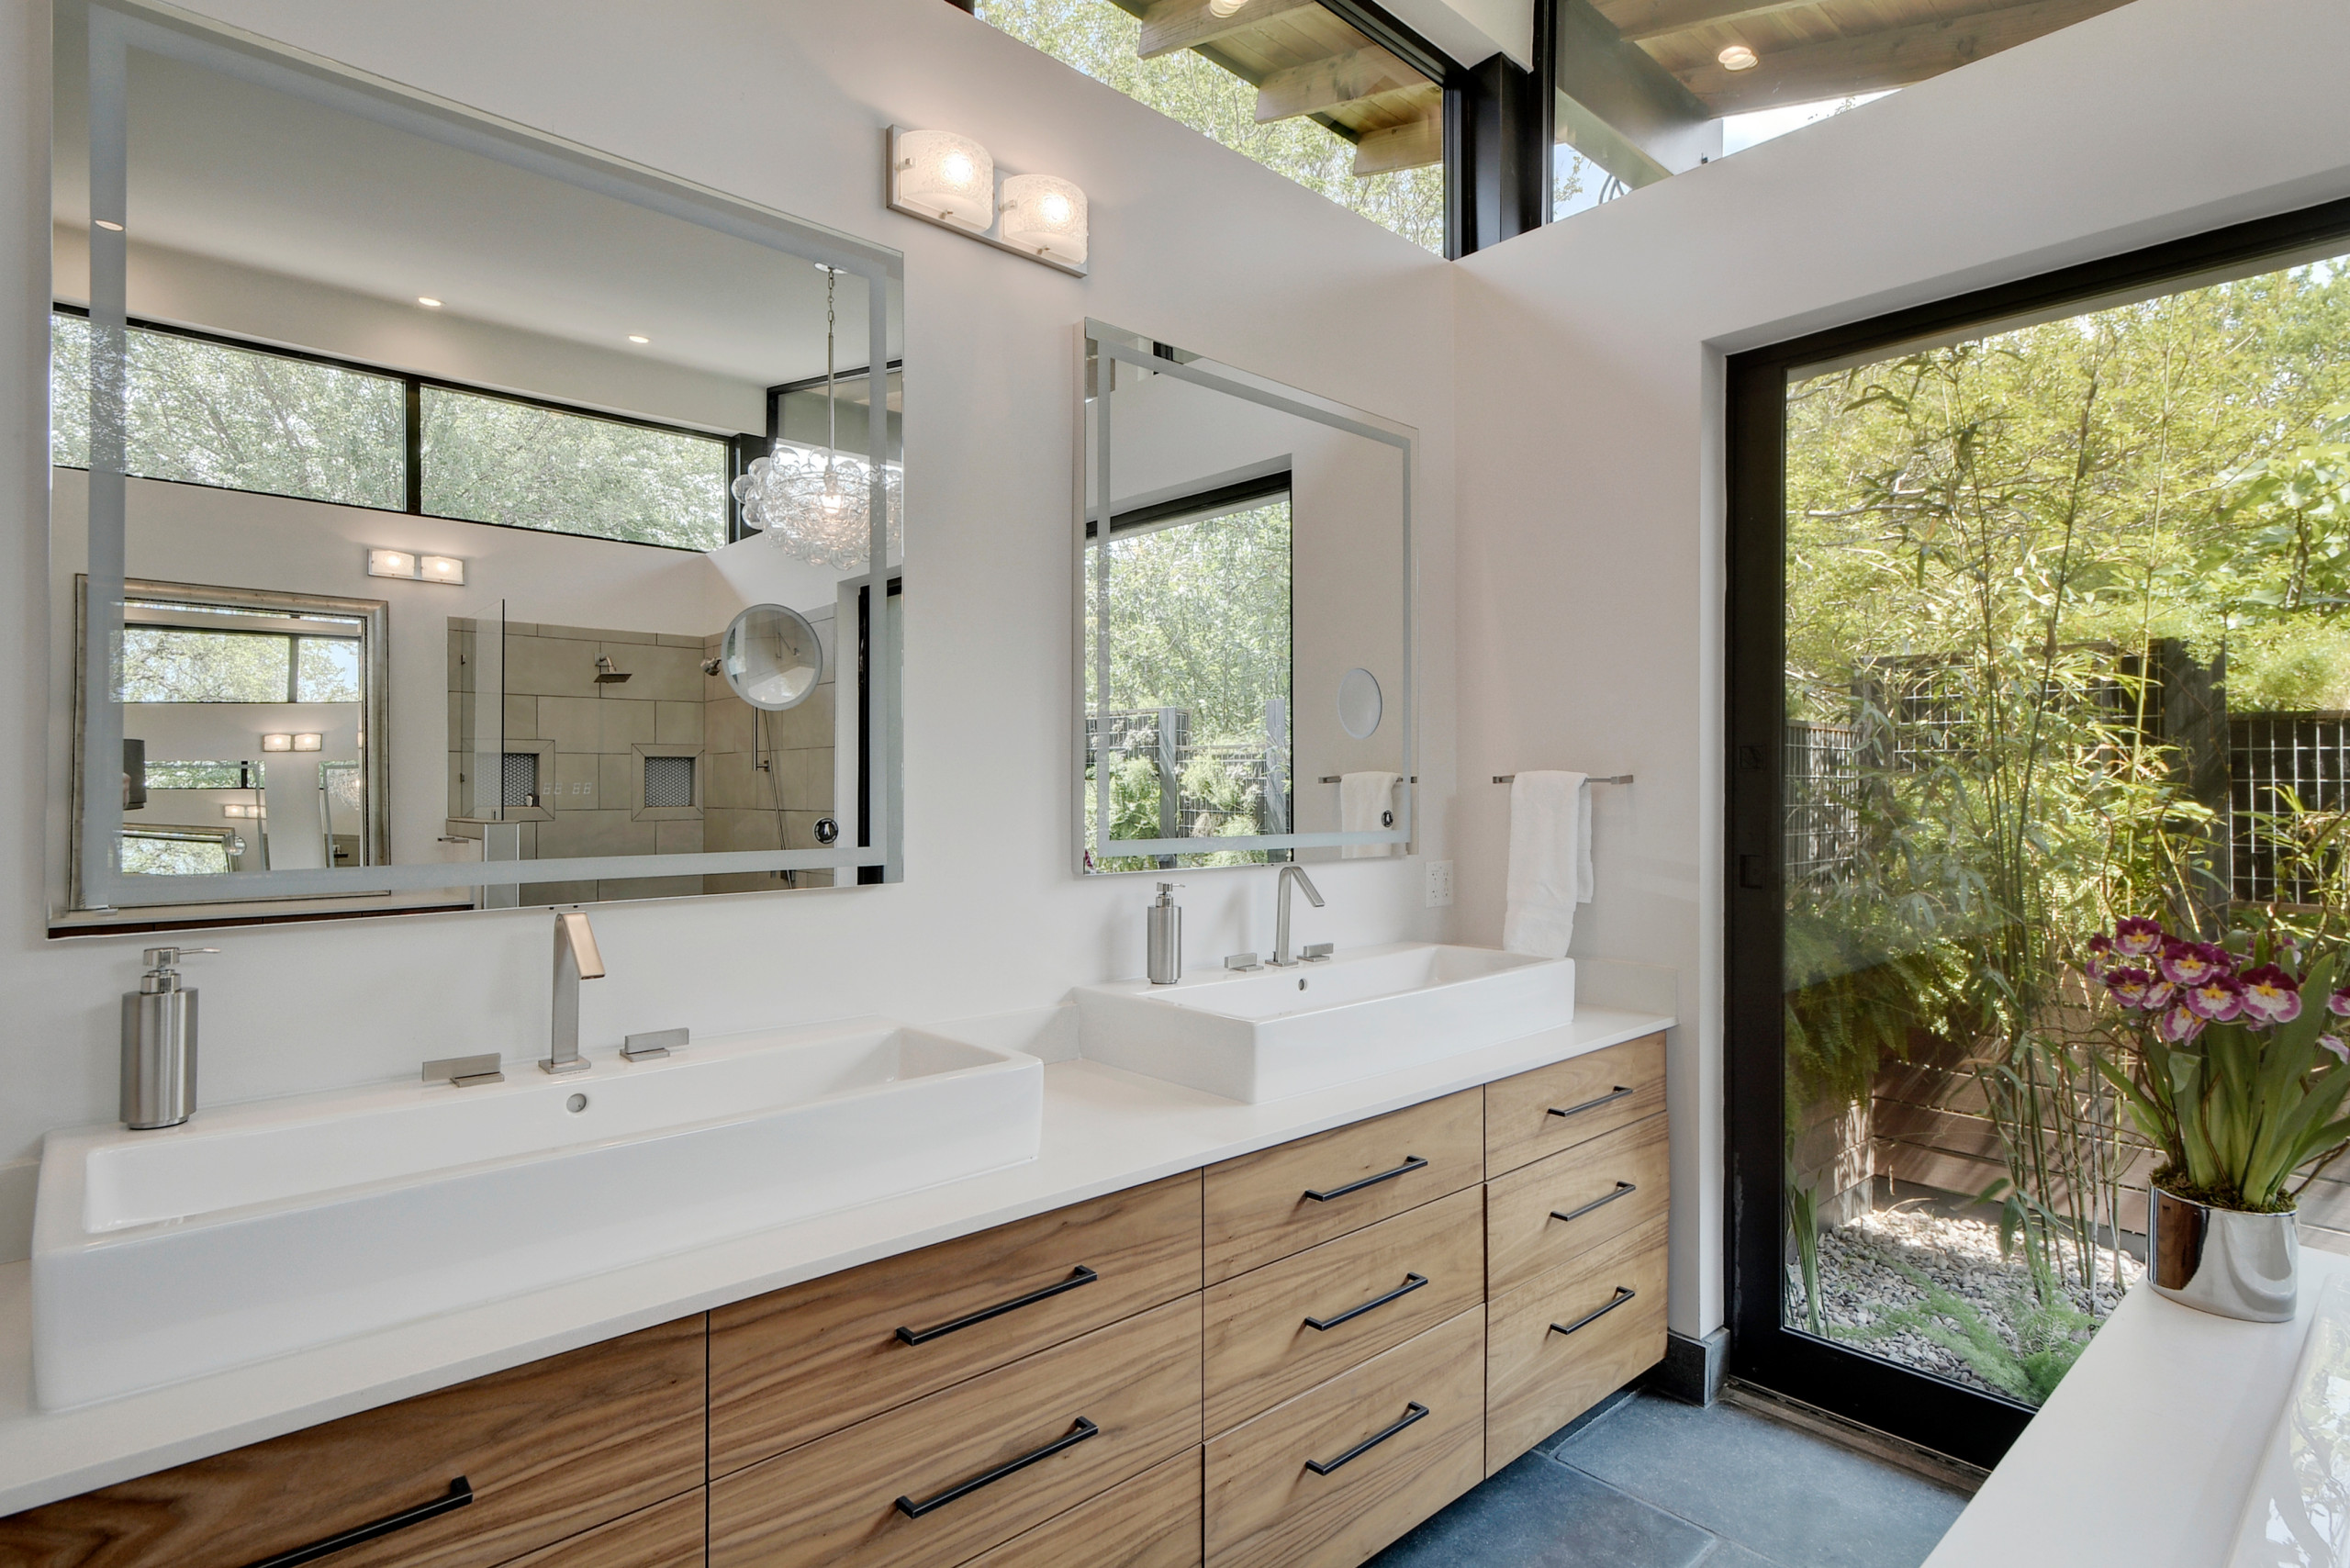 75 Beautiful Double Sink Bathroom Pictures Ideas February 2021 Houzz